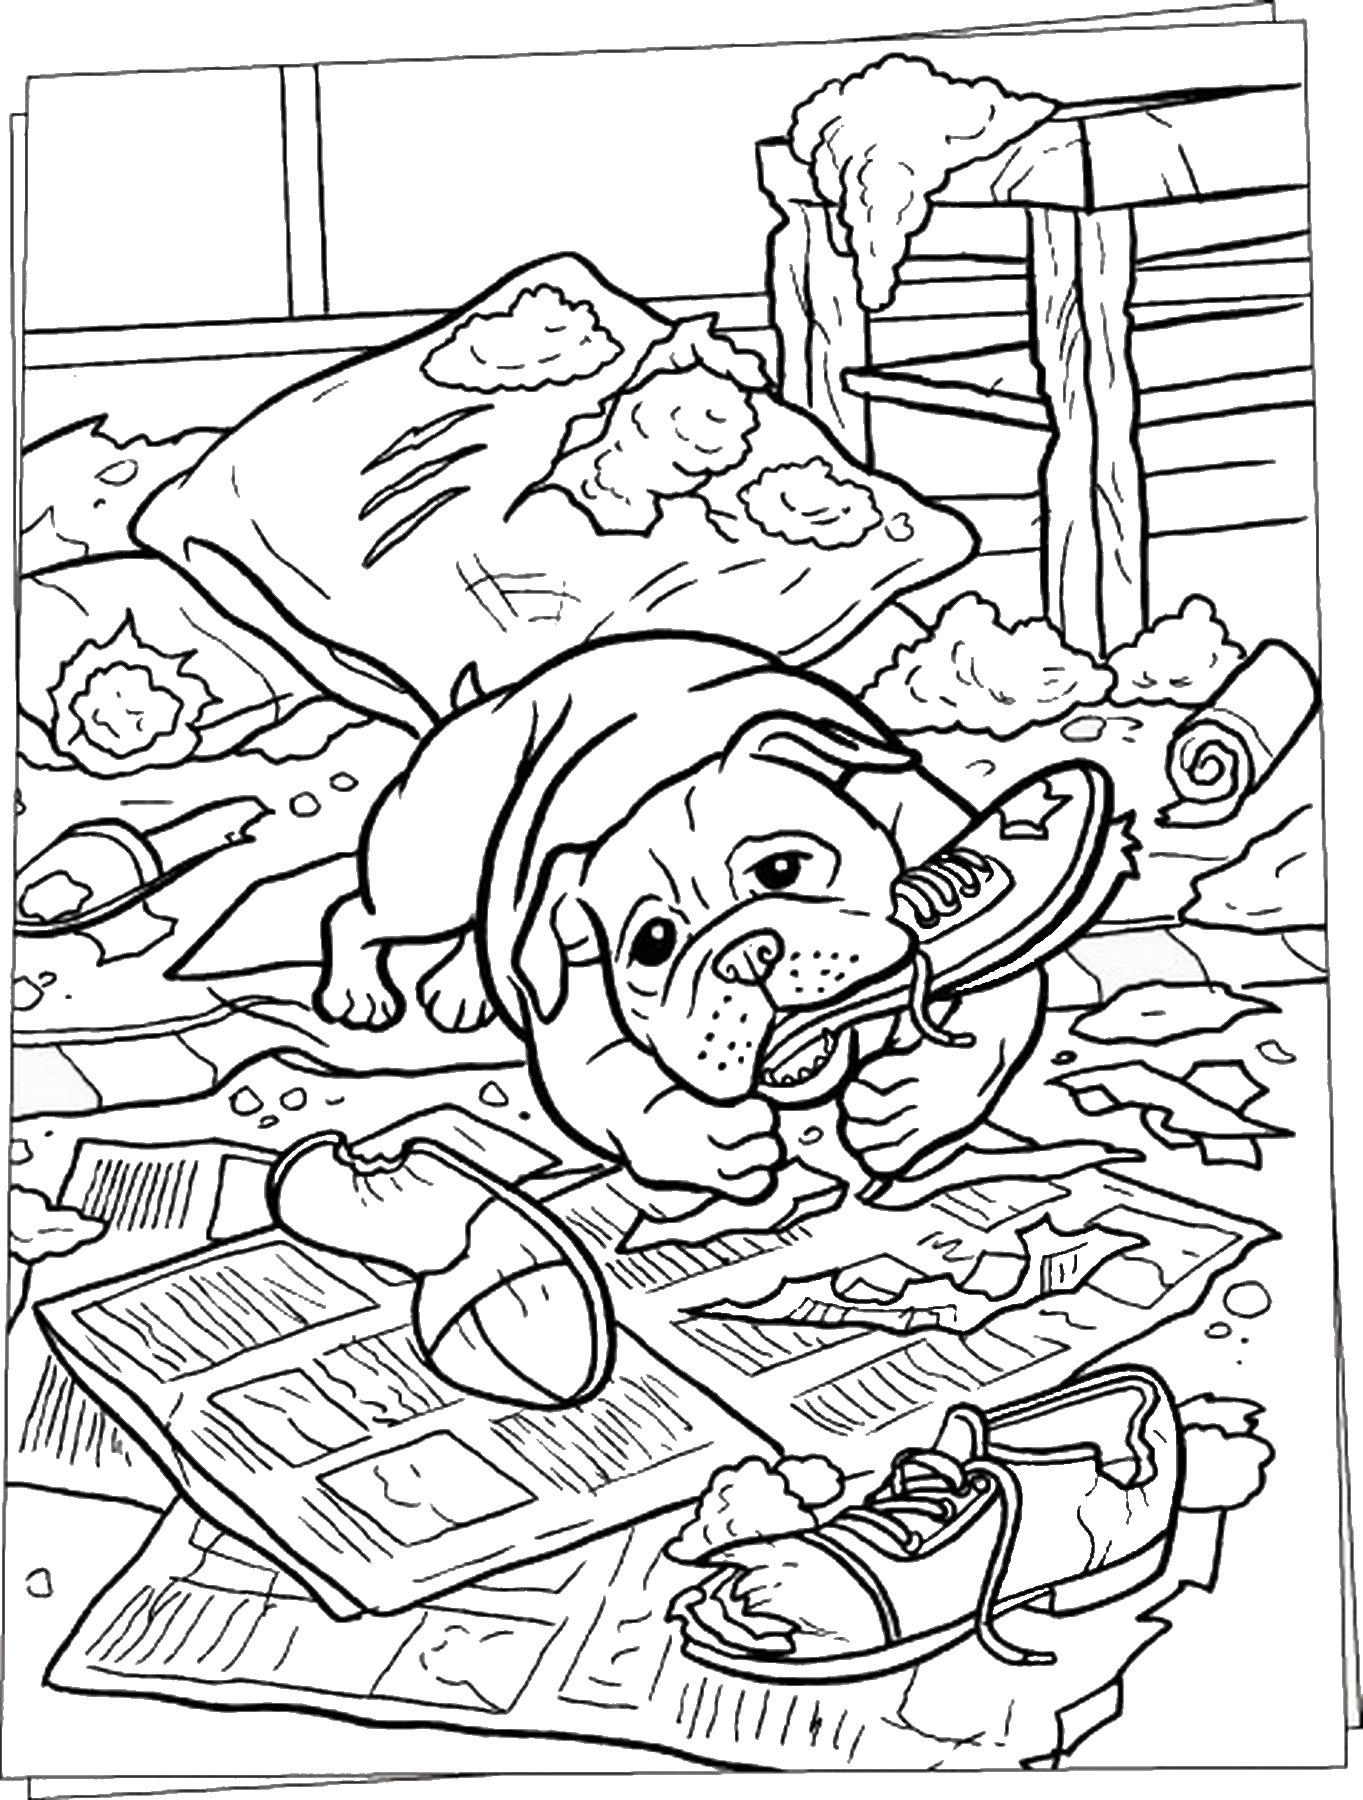 difficult dog coloring pages hard pictures of dogs coloring pages coloring dog pages difficult